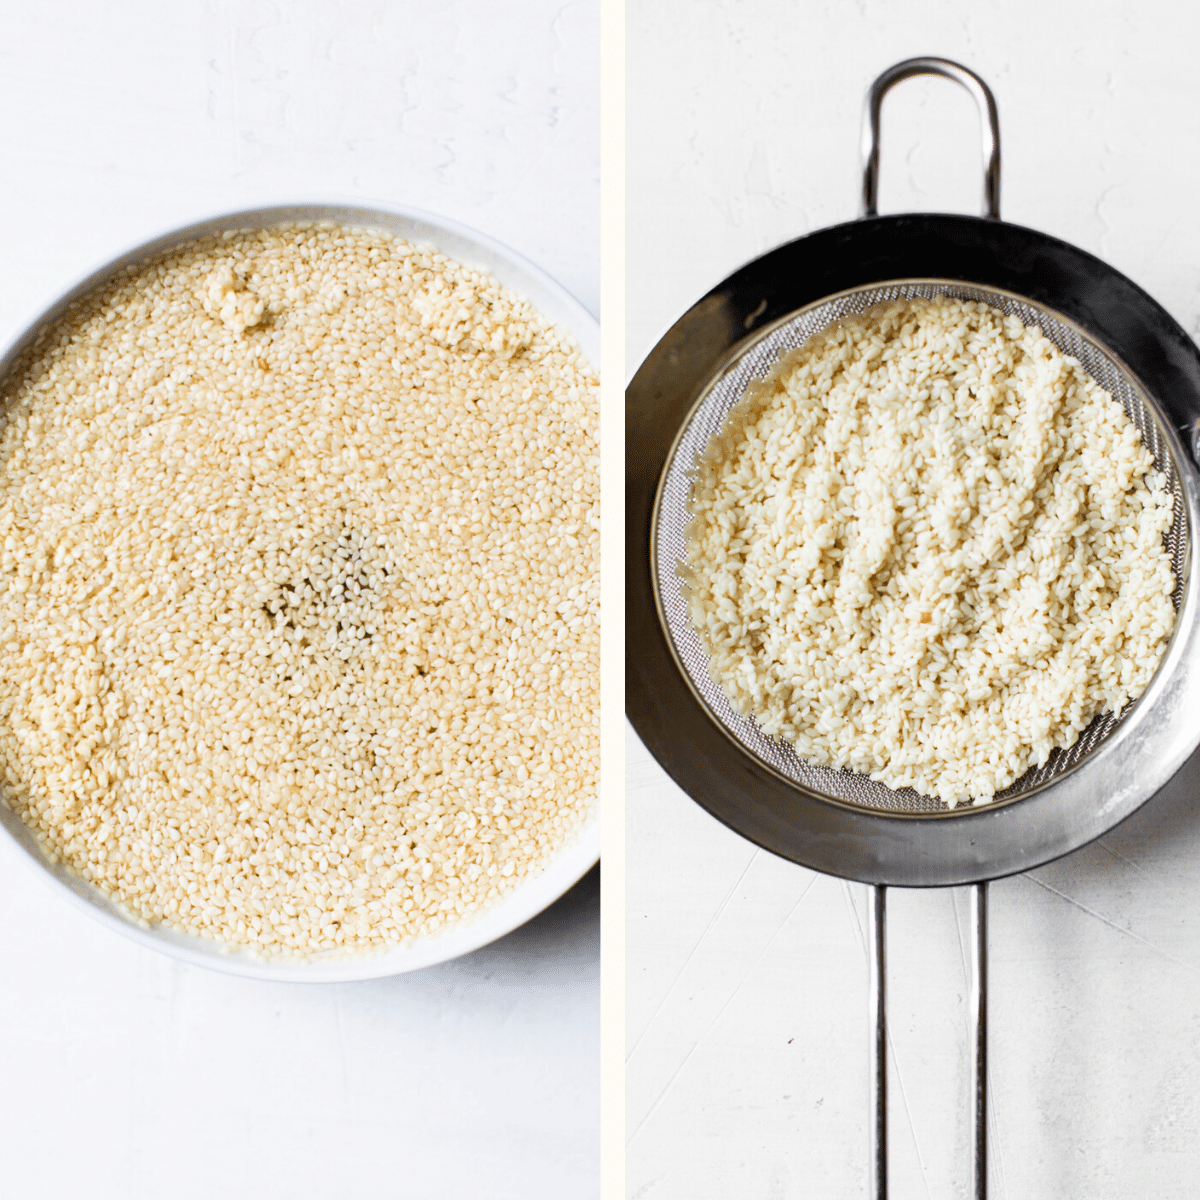 sesame seeds in a bowl and in a strainer